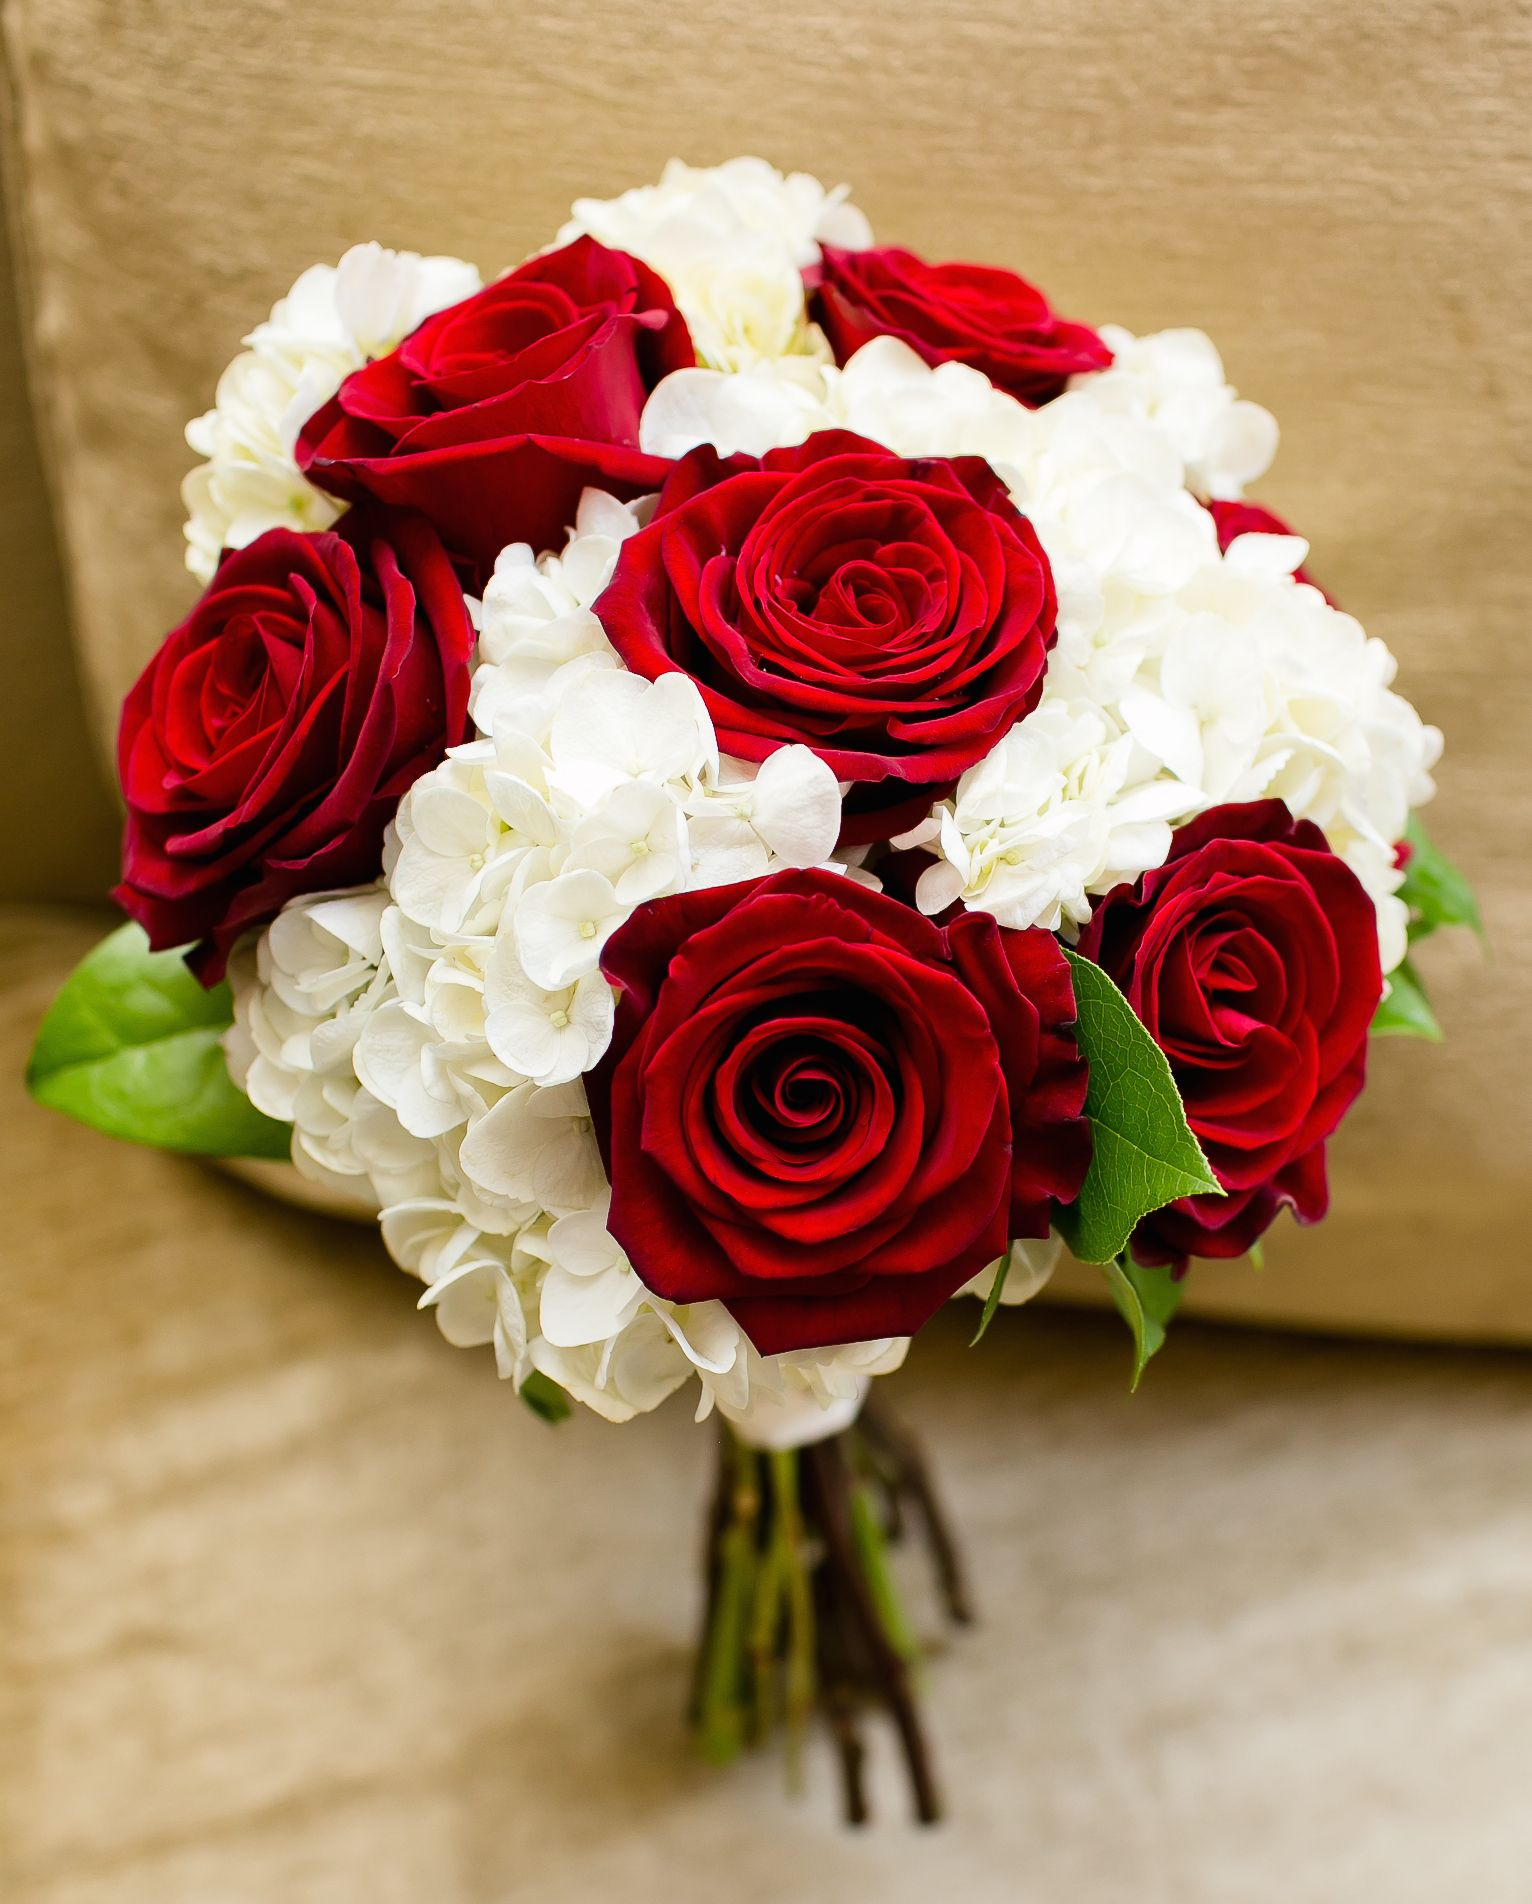 Rose Wedding Ideas: Red Roses And White Hydrangeas. Classic Bouquet For A Fall